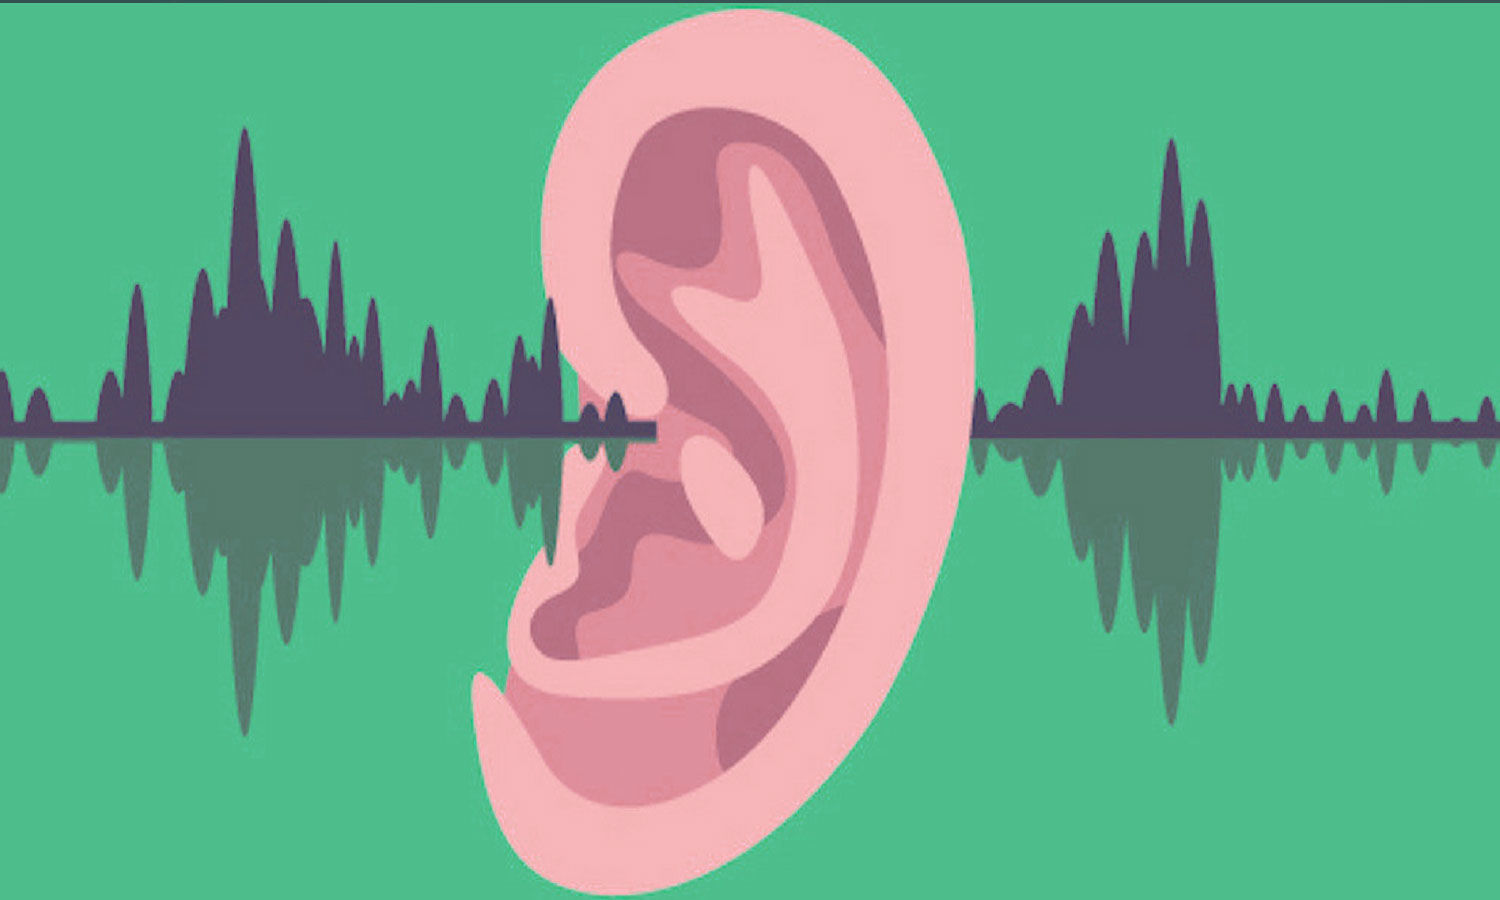 Cisplatin may induce hearing loss in children and young adults, study reveals - Medical Dialogues